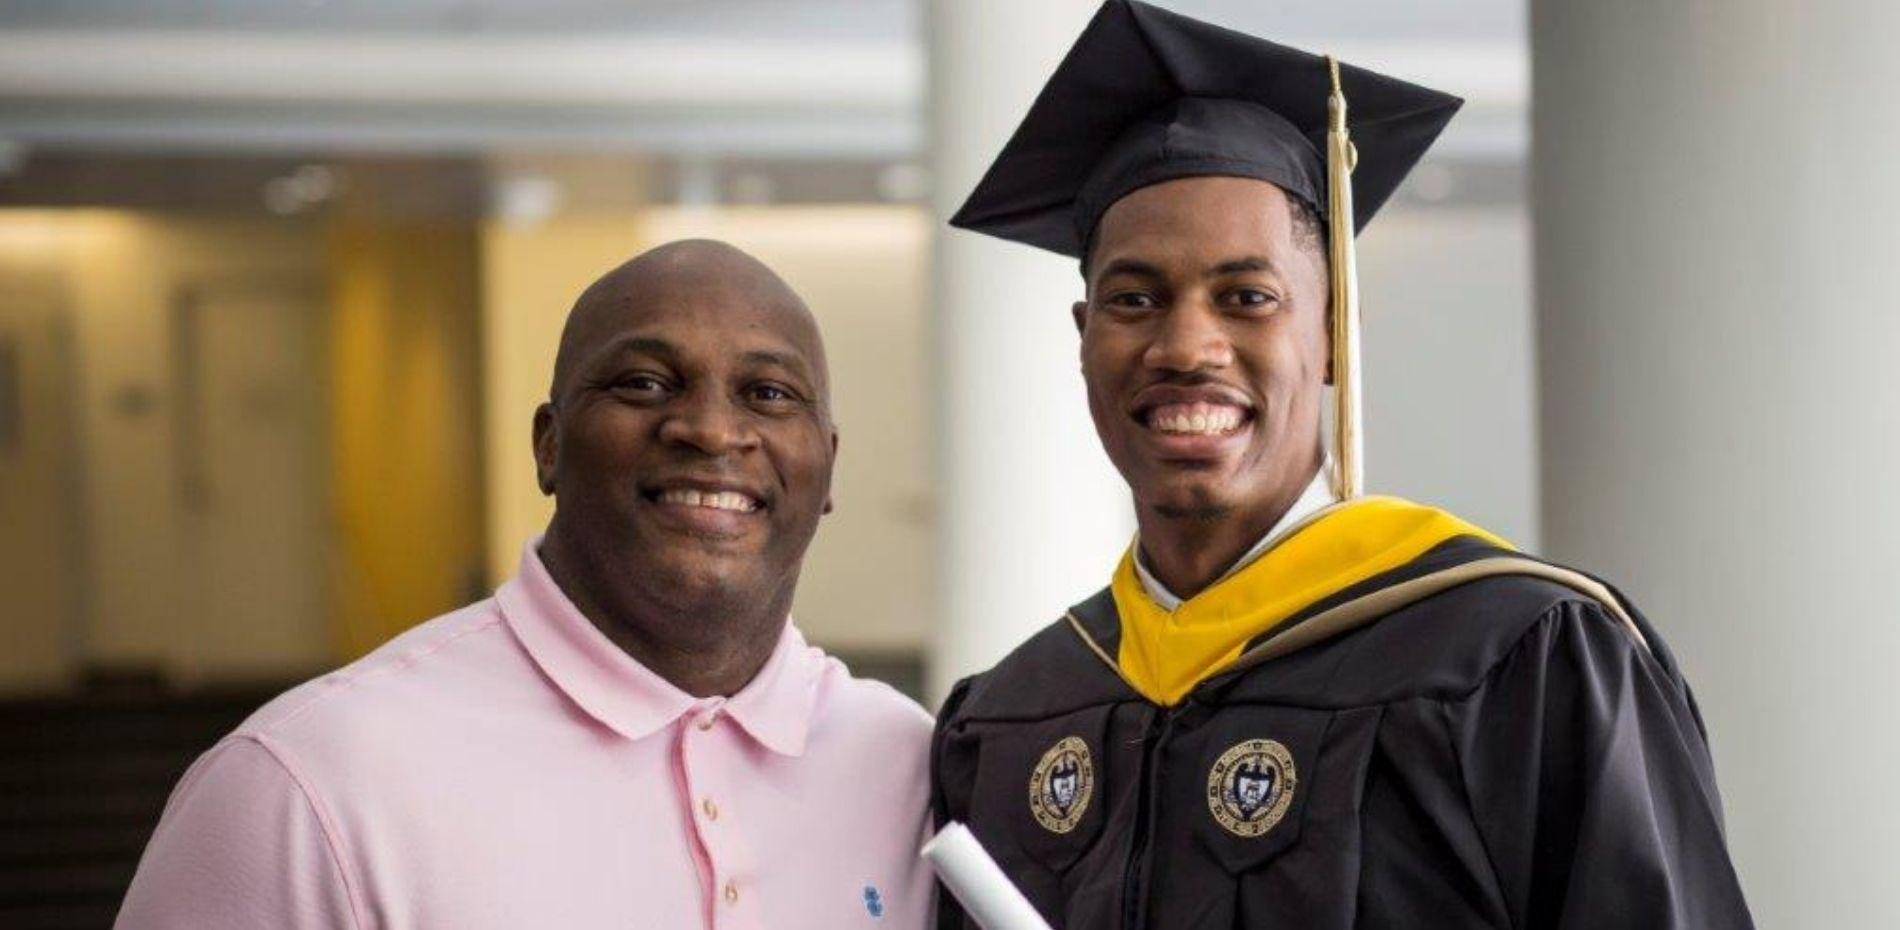 Victor Shell Sr. and Victor Shell Jr., safety and health profesisonals